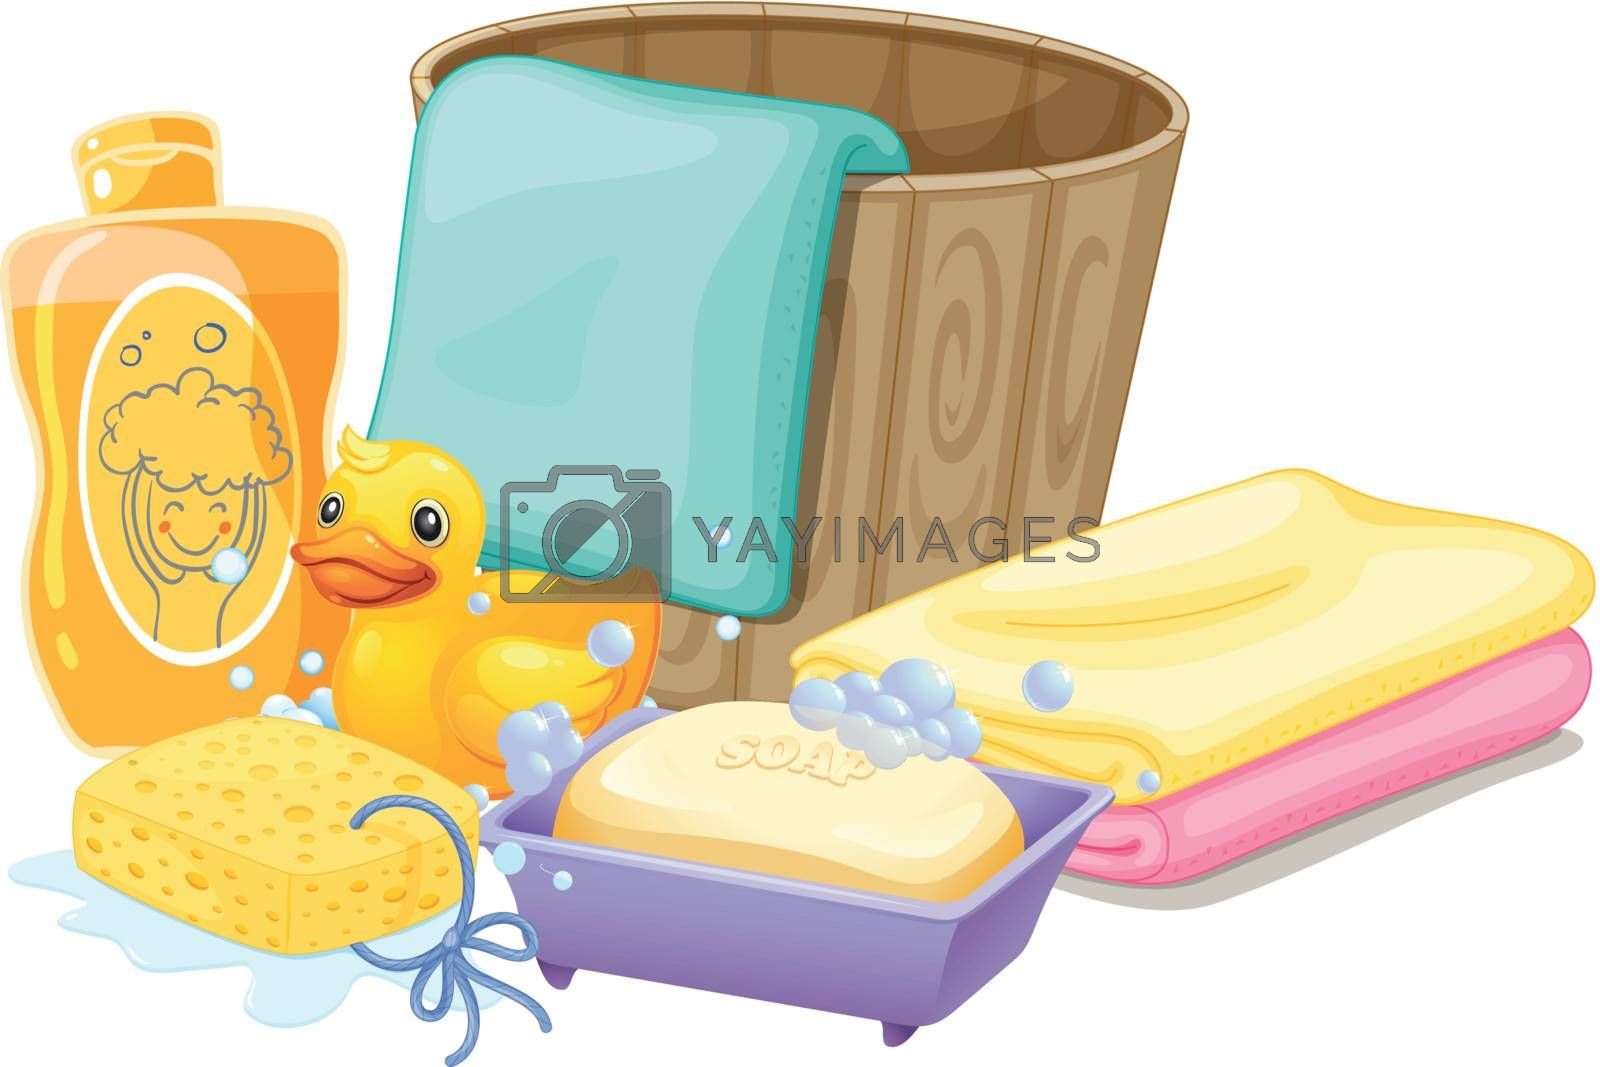 Illustration of the things needed in taking a bath